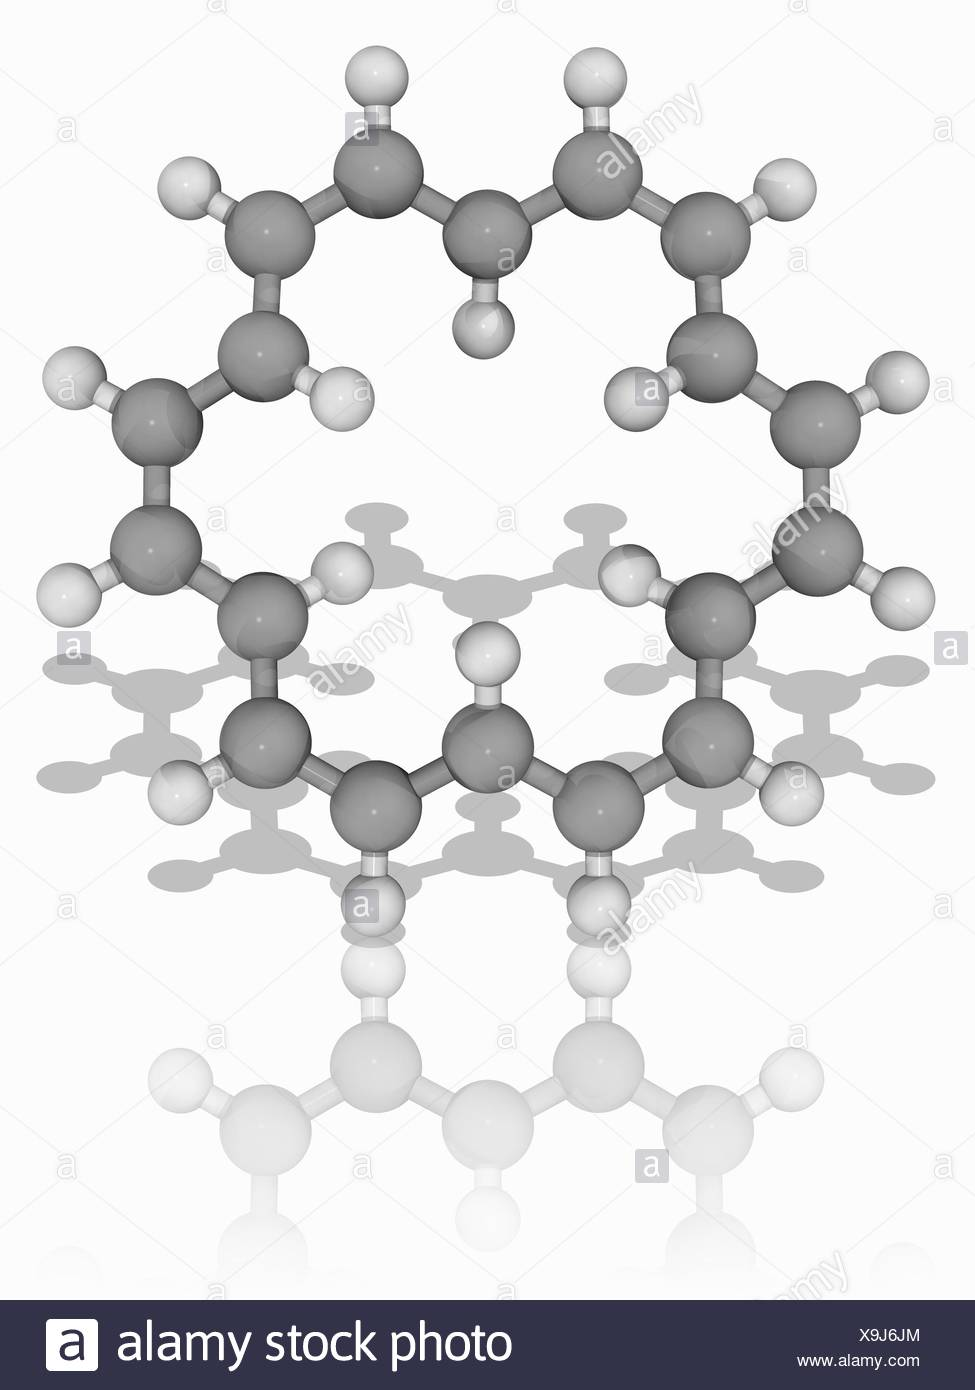 18-annulene. Molecular model of the hydrocarbon 18-annulene (C18.H18). This is an aromatic completely conjugated monocyclic hydrocarbon, also known as cyclooctadecanonaene. Atoms are represented as spheres and are colour-coded: carbon (grey) and hydrogen (white). Illustration. - Stock Image